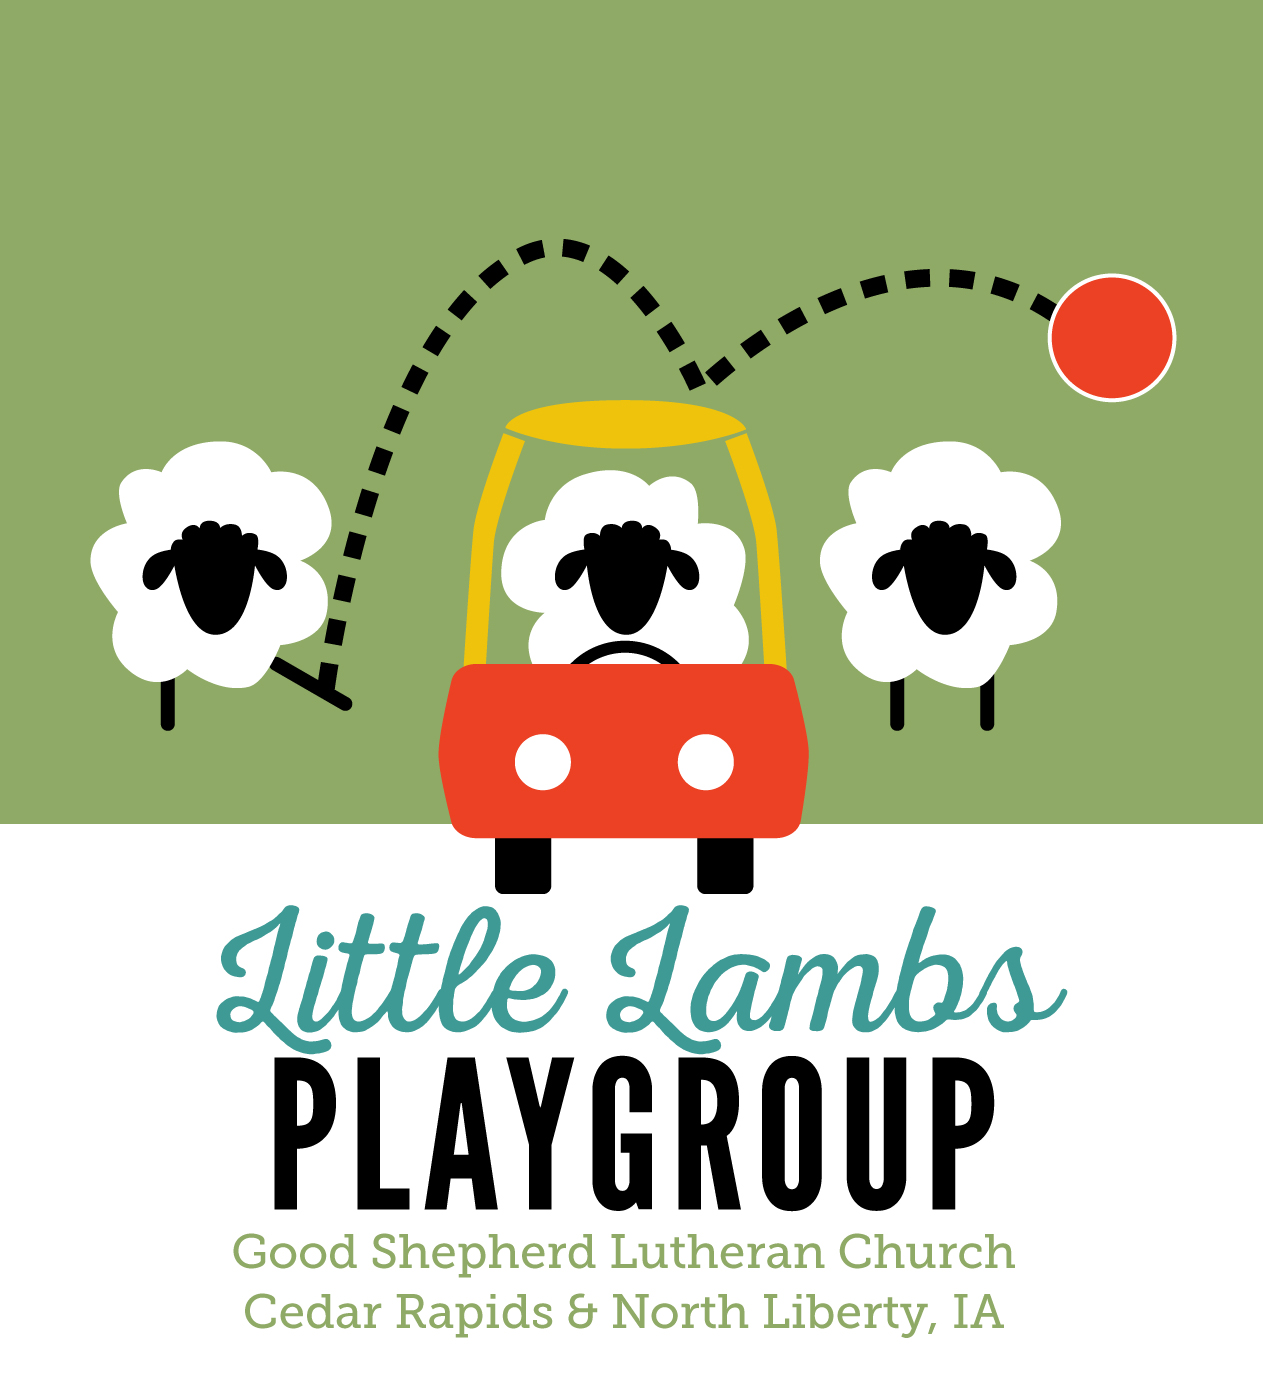 Little Lambs Playgroup Flyer